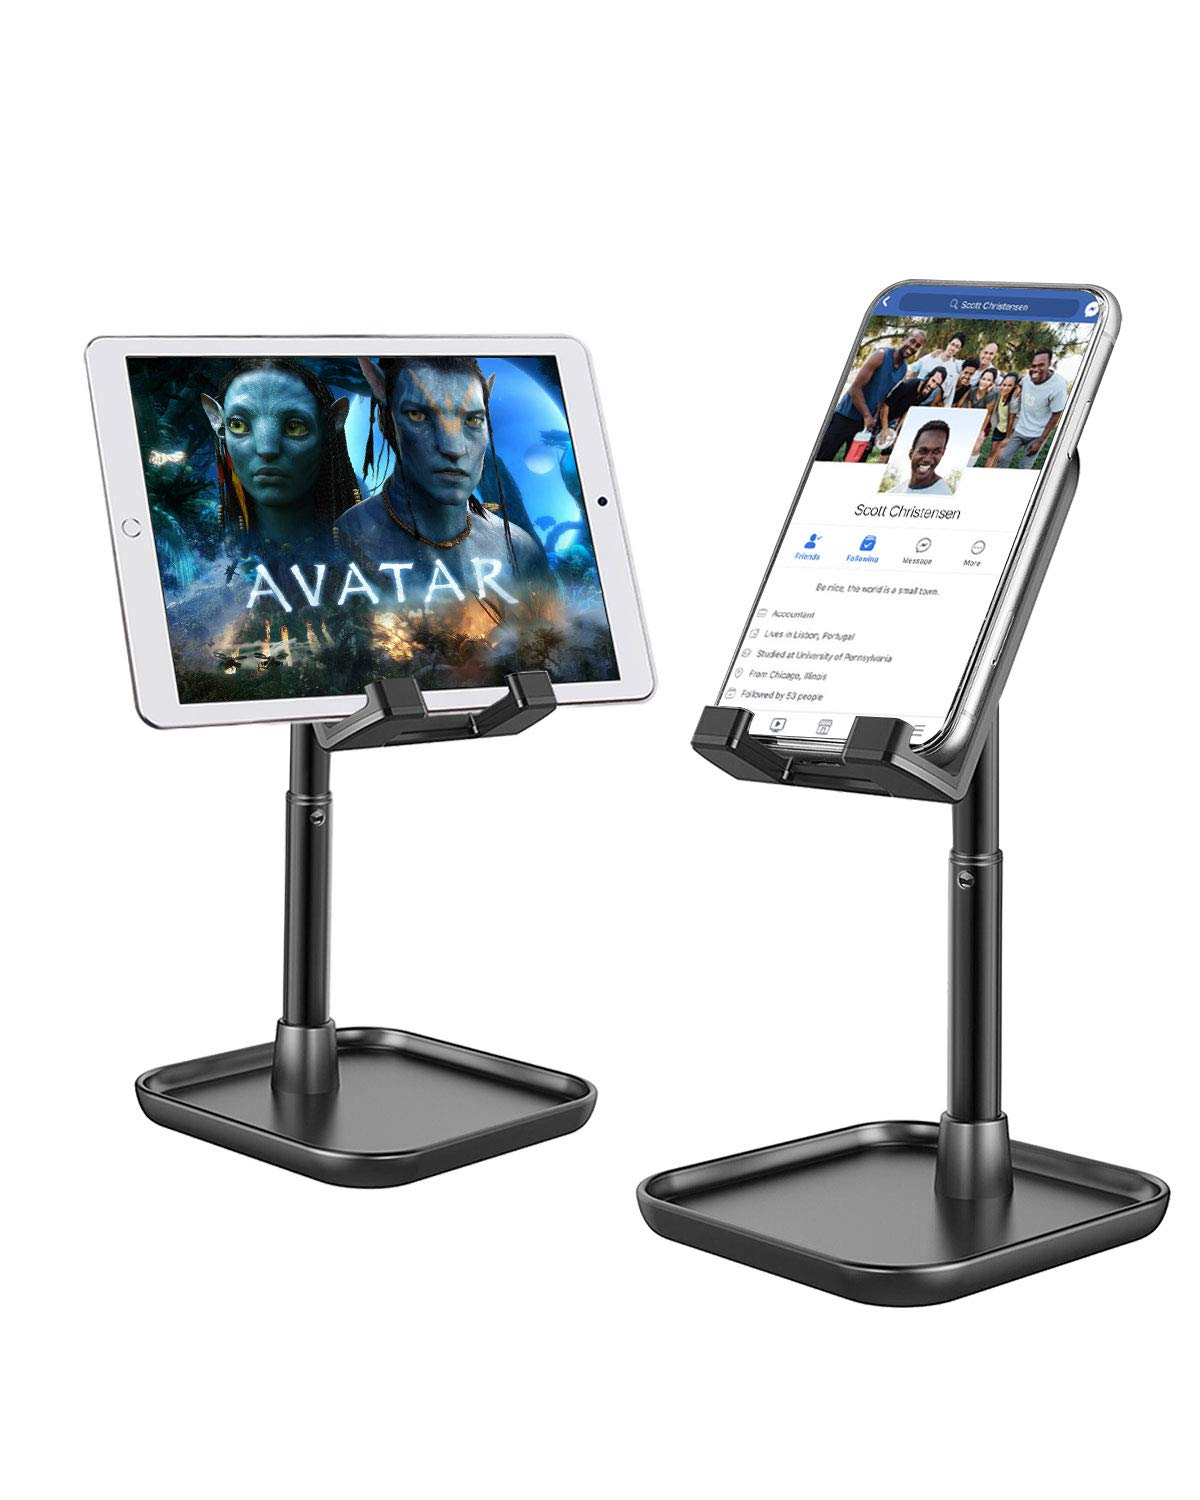 Cell Phone Stand for Desk,Height Angle Adjustable Phone Stand,Deep Dream Desktop Sturdy Aluminum Metal Phone Holder,Compatible with iPhone/iPad/Kindle/Mobile Phone/Tablet,4-13in